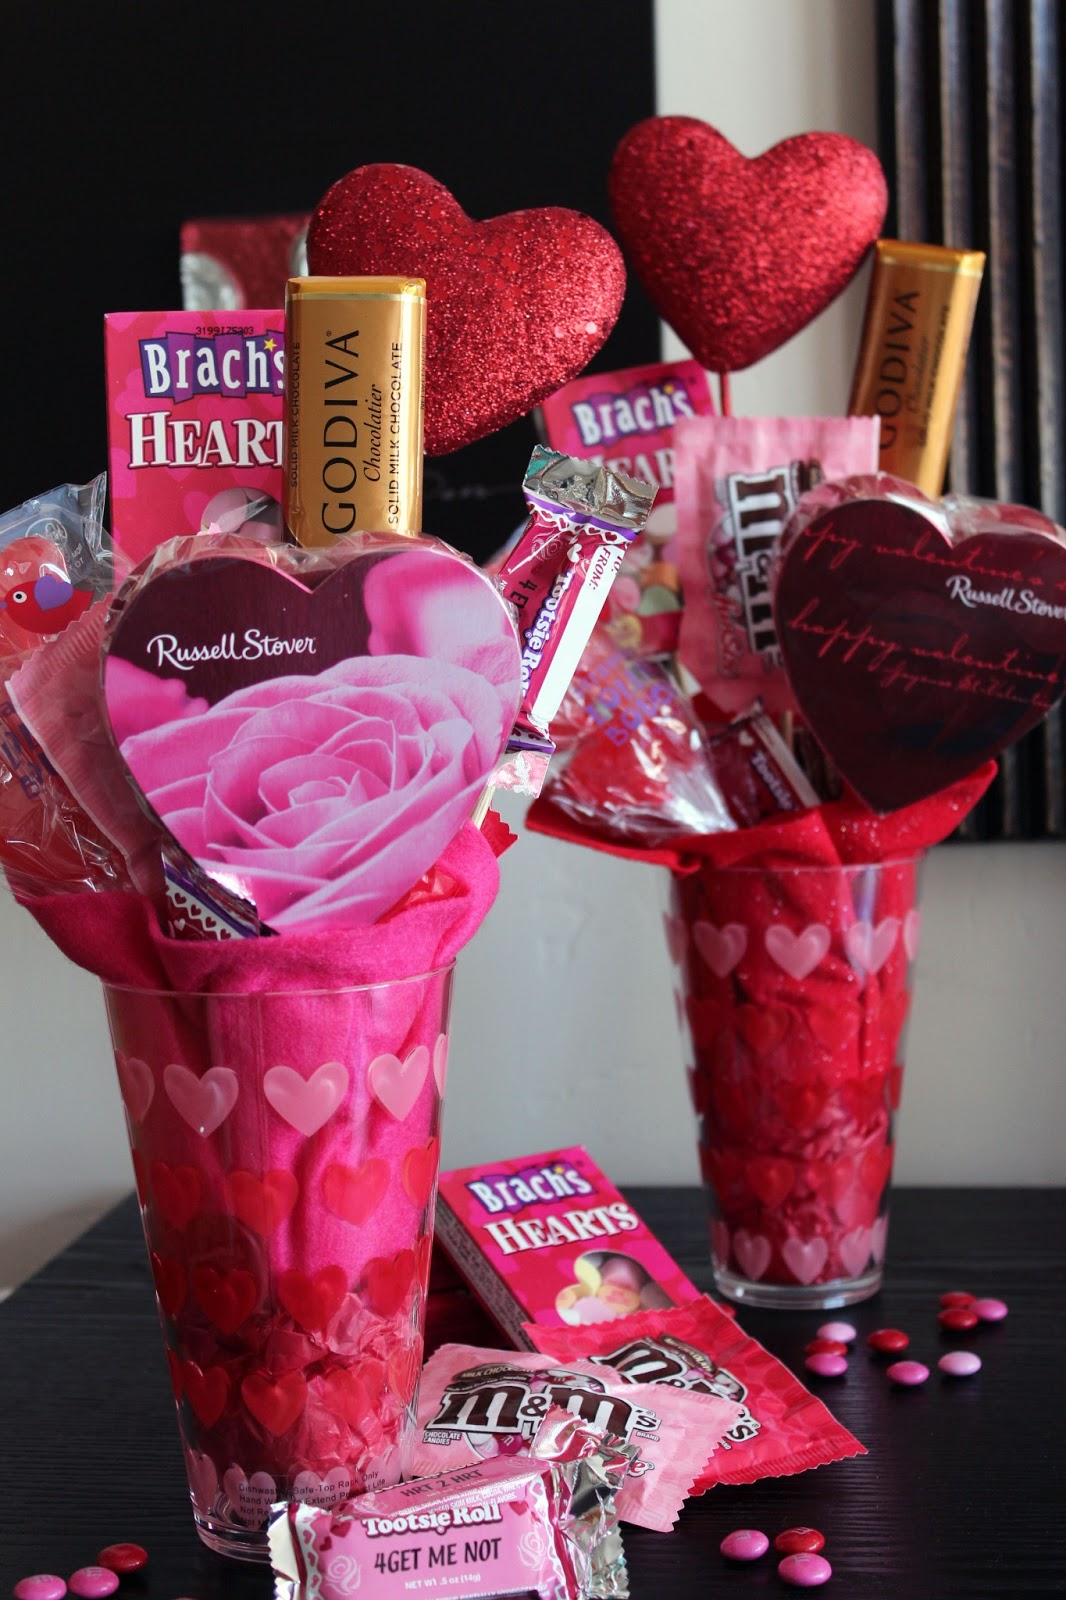 Here Is A How To For Making Your Own Valentine Candy Bouquets For Your  Kids, Teachers, Neighbors, Co Workers, Or Anyone Who Needs A Little Extra  Love This ...